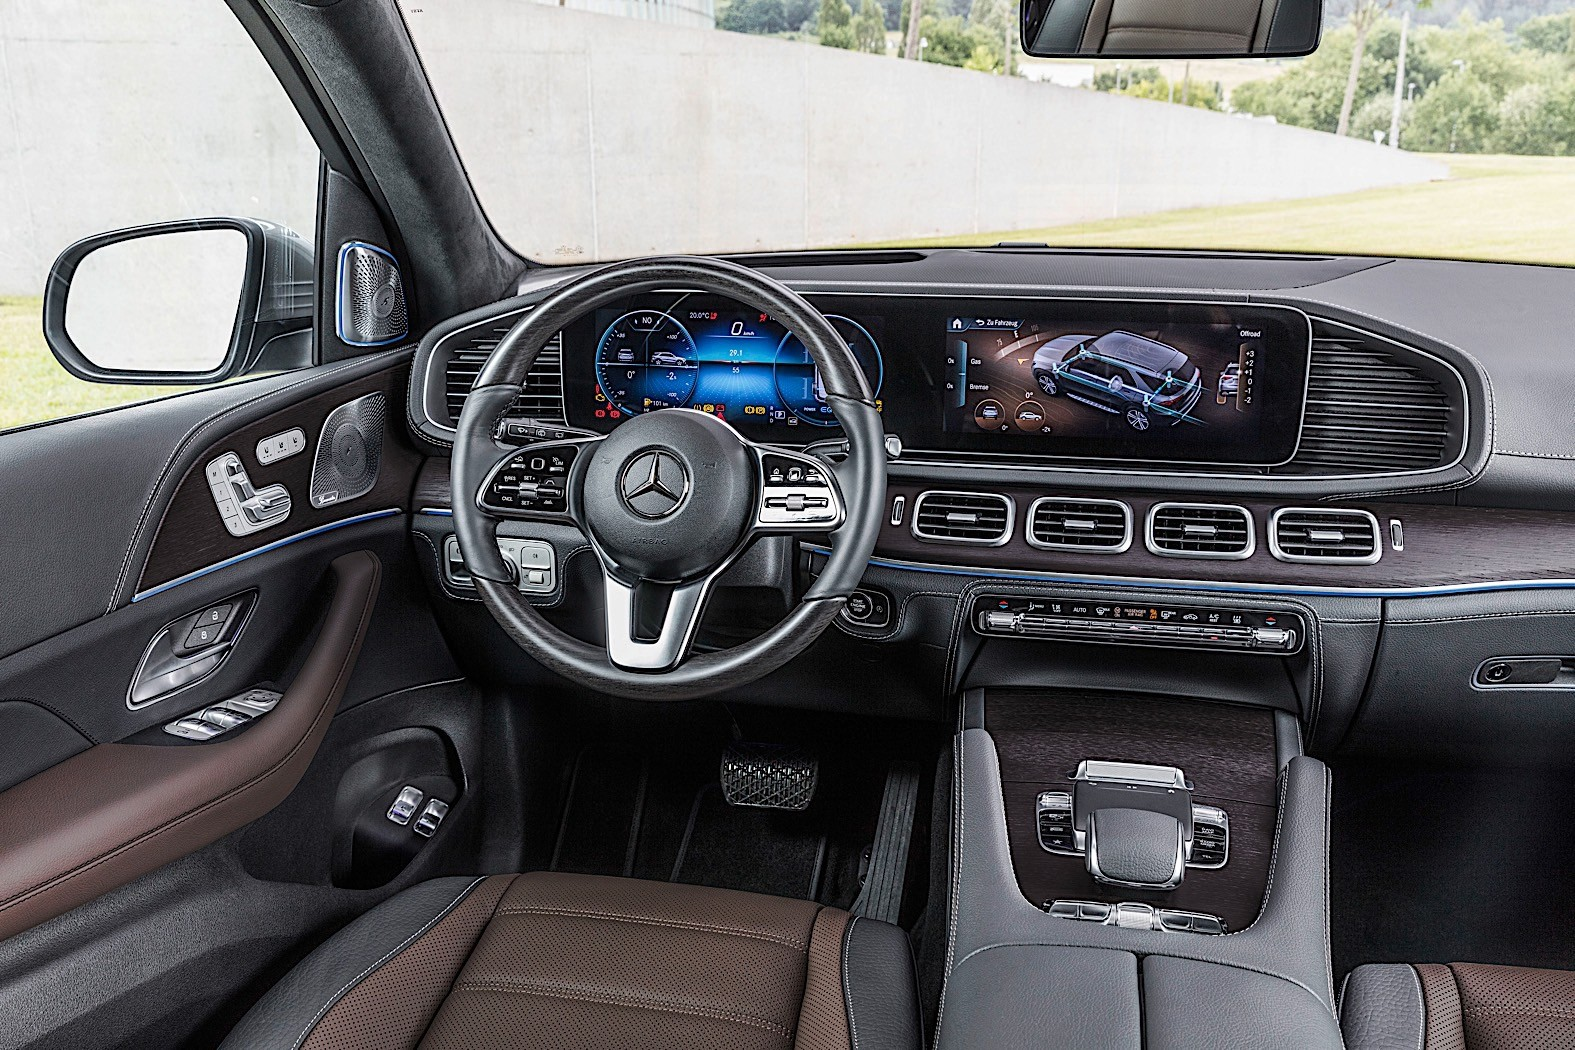 Noul Sprinter 2018 >> 2019 Mercedes-Benz GLE Breaks Cover, Packed with Technology - autoevolution